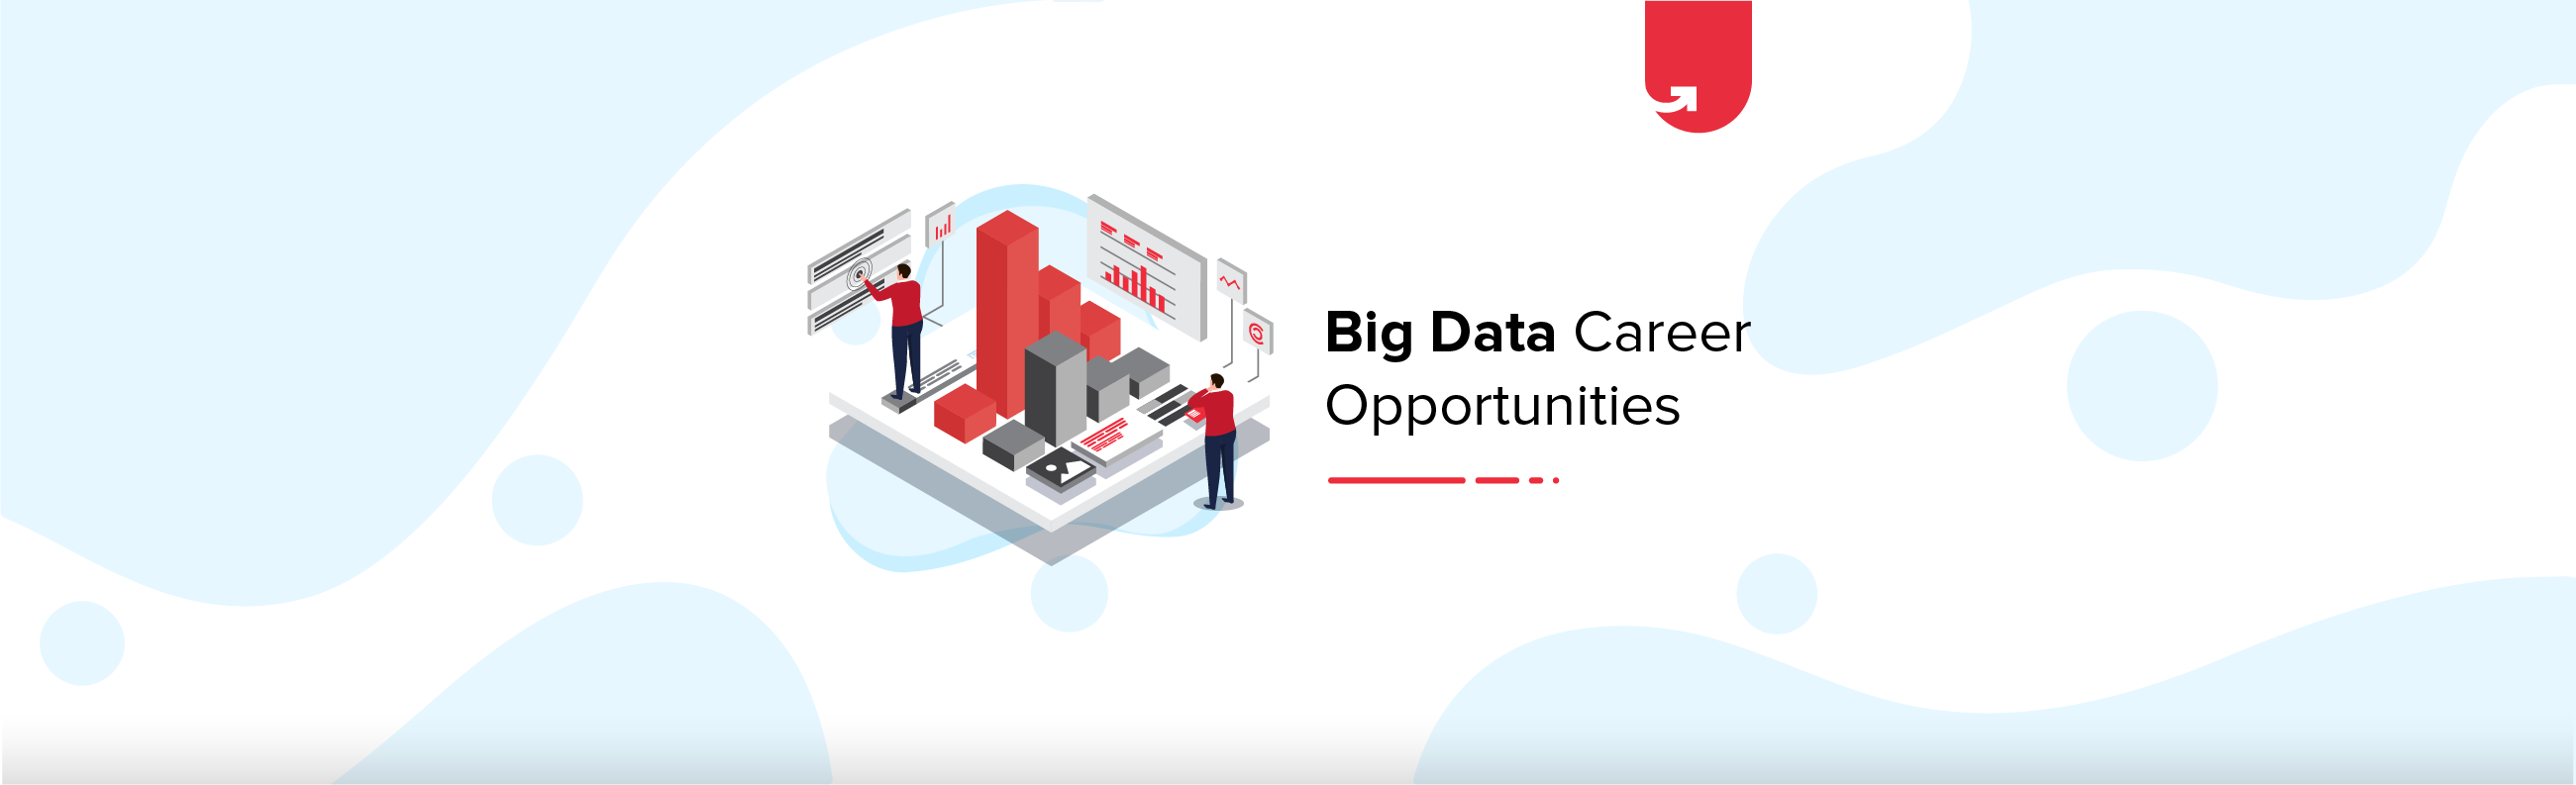 Big Data Career Opportunities: Ultimate Guide [2021]